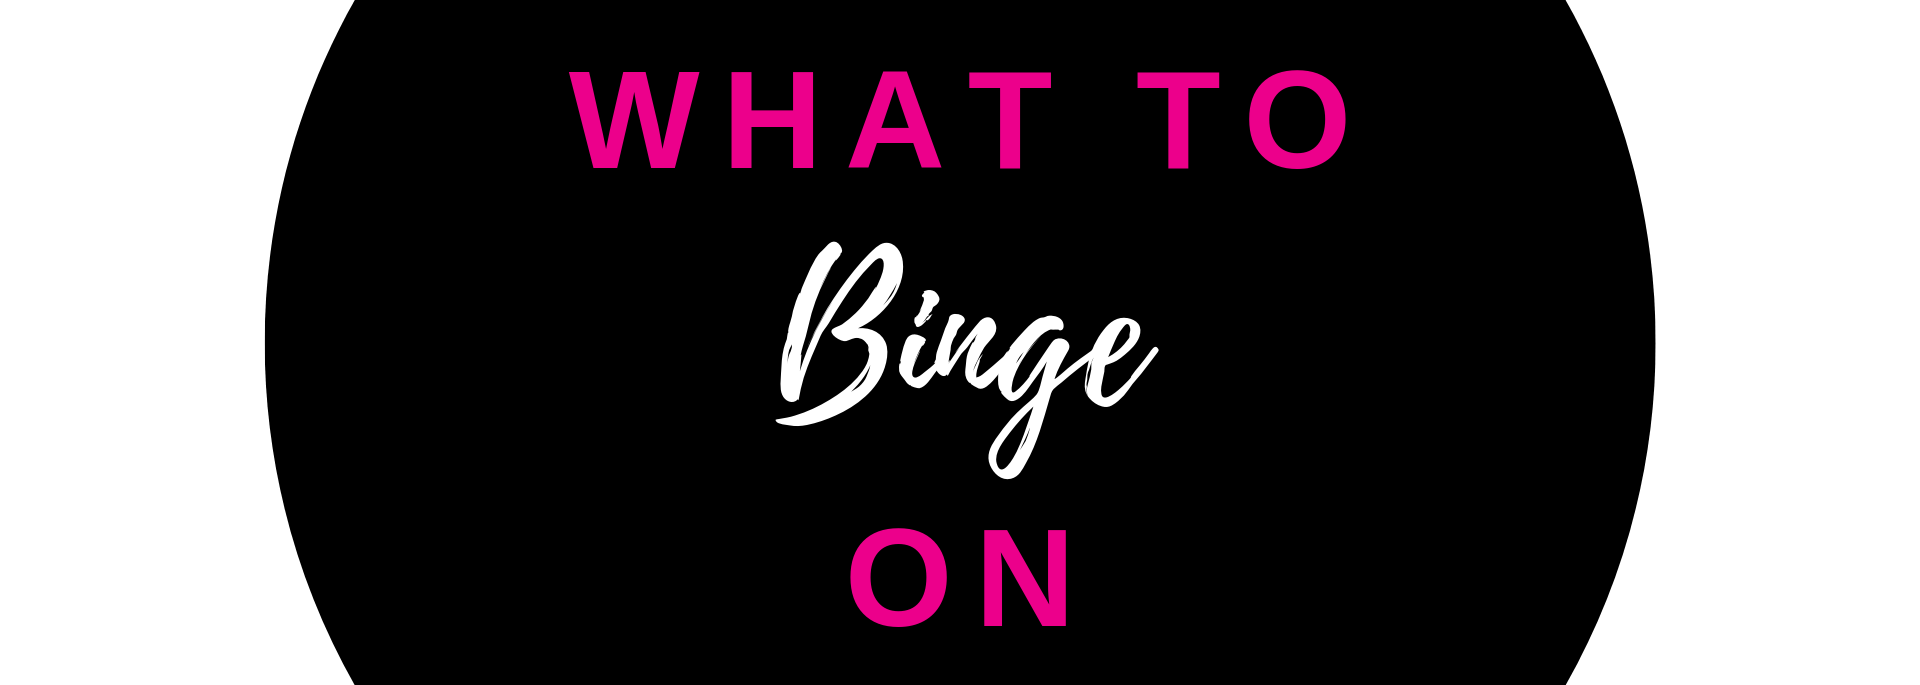 WHAT TO BINGE ON channel